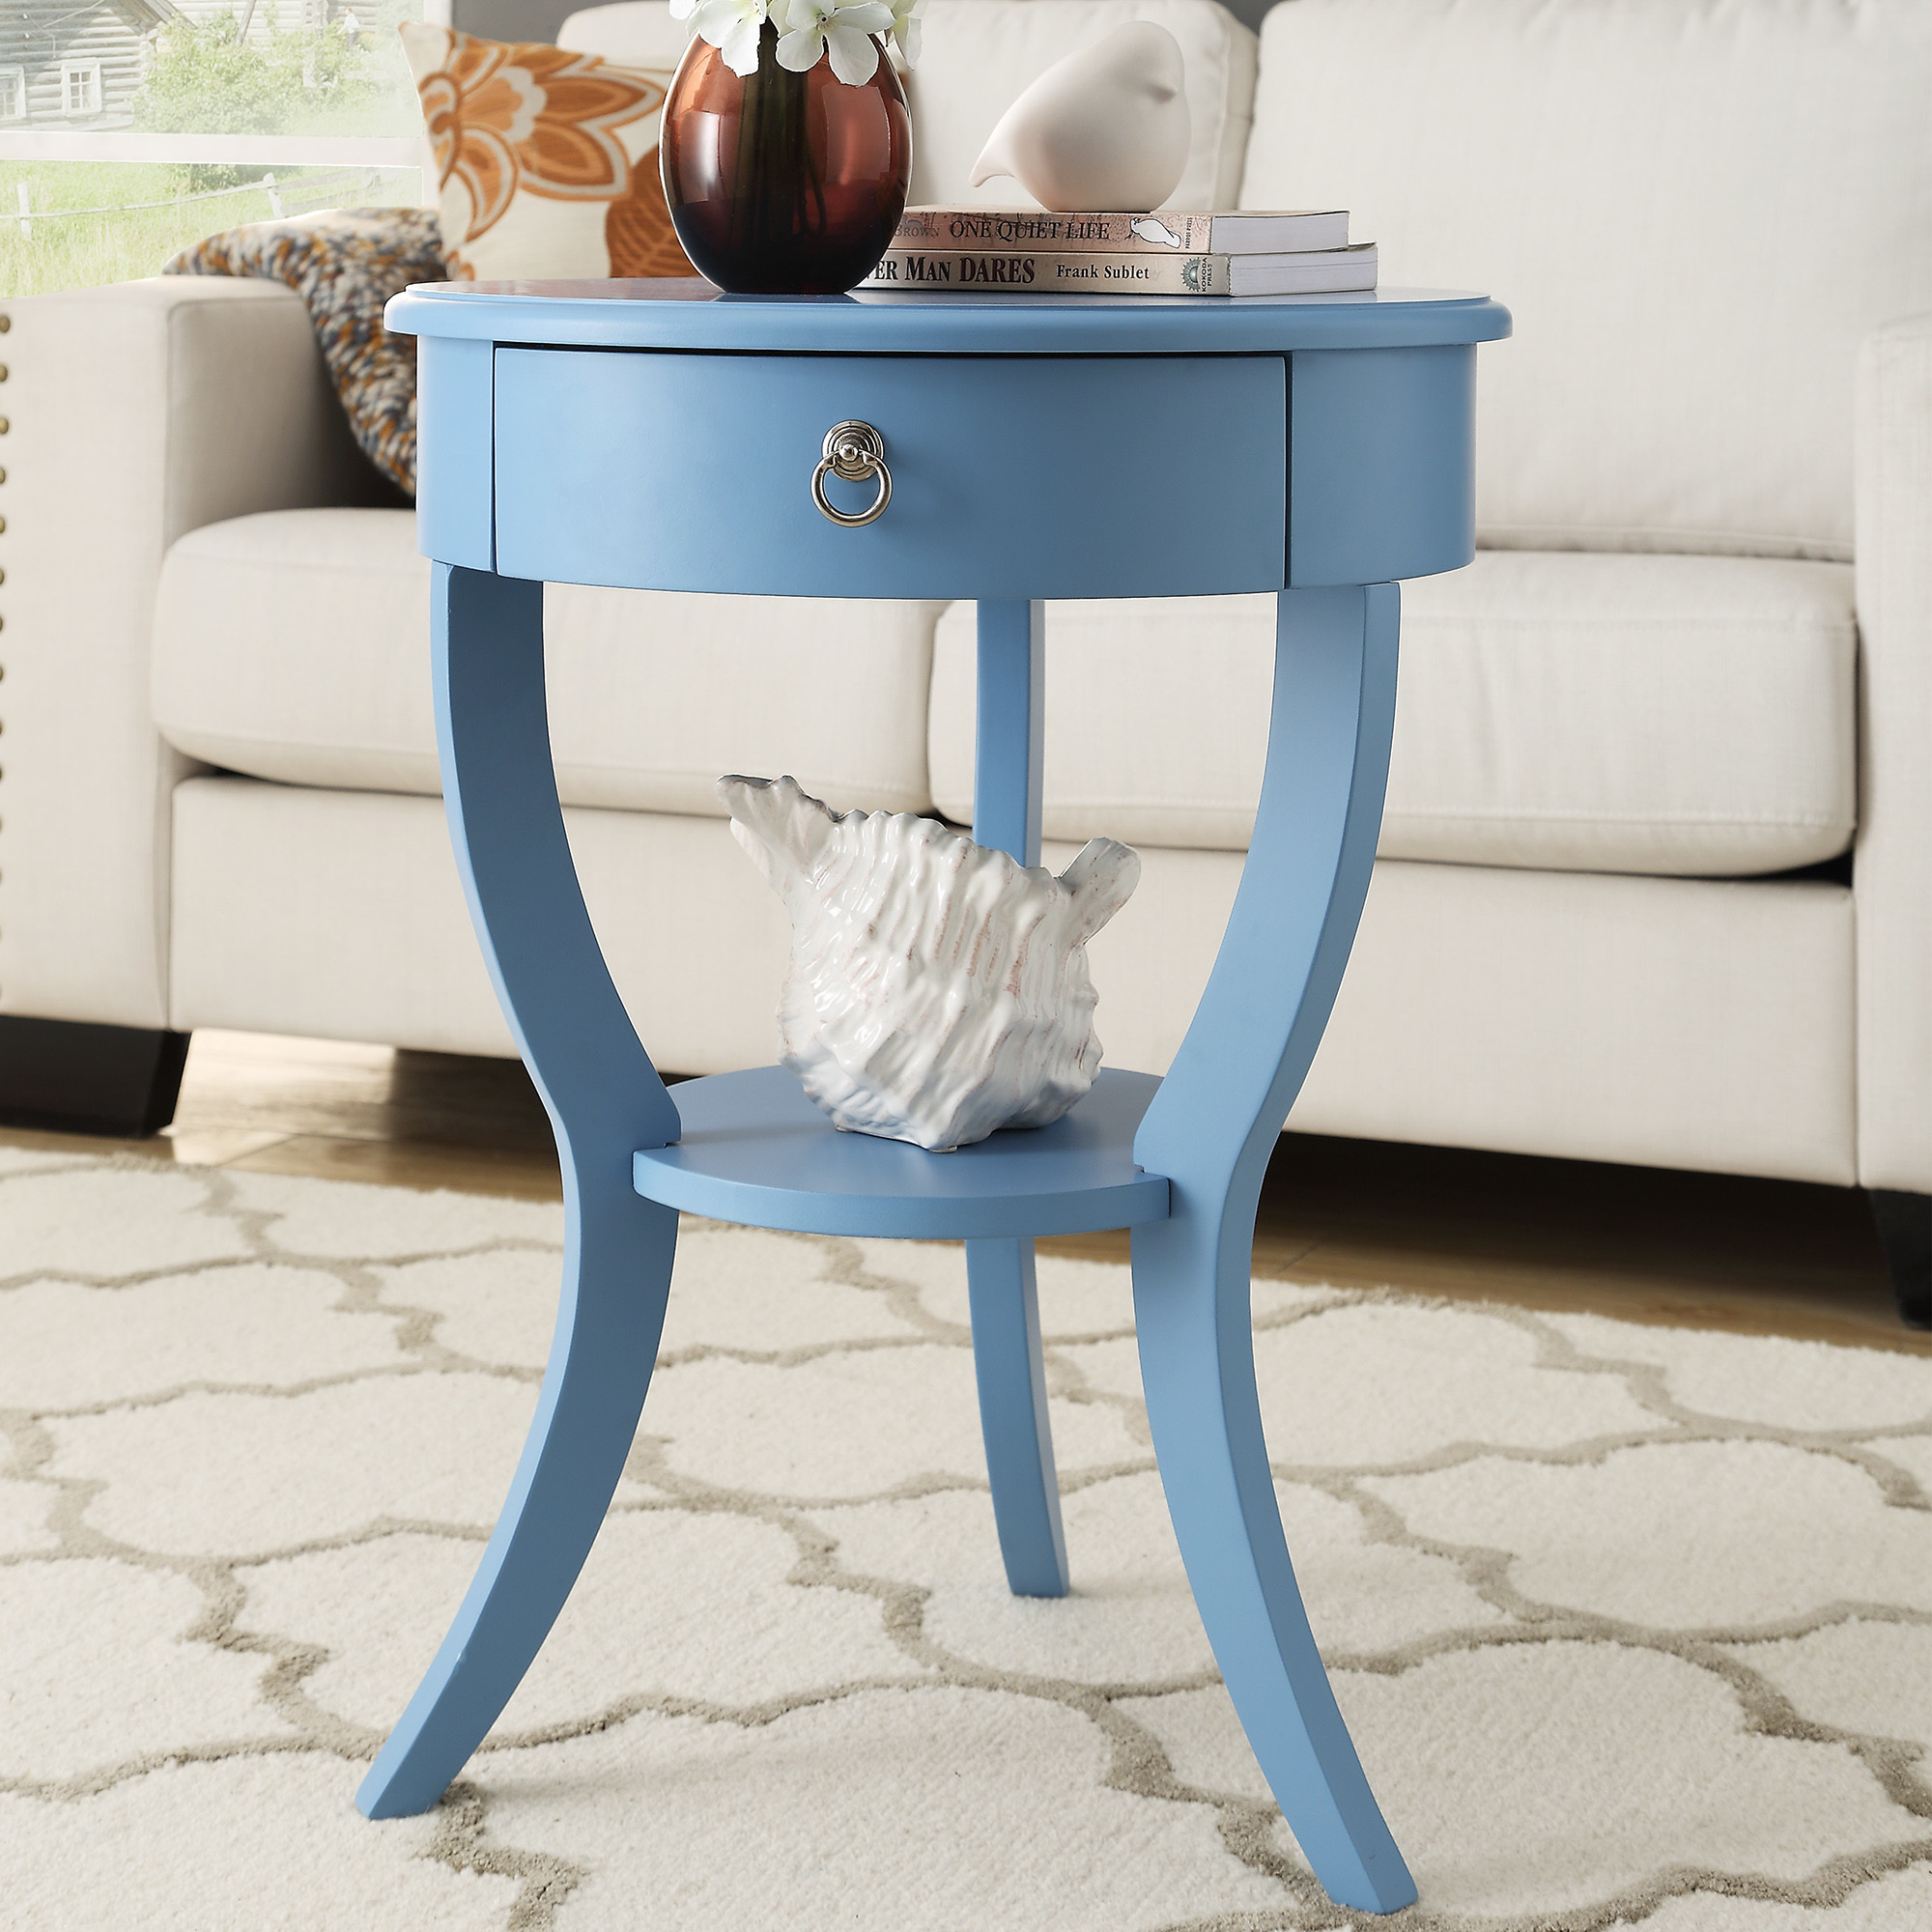 end table accent tables for living room small round nightstands cloths target covers solid wood furniture calgary argos telephone silver leaf paint country farmhouse royal sofa